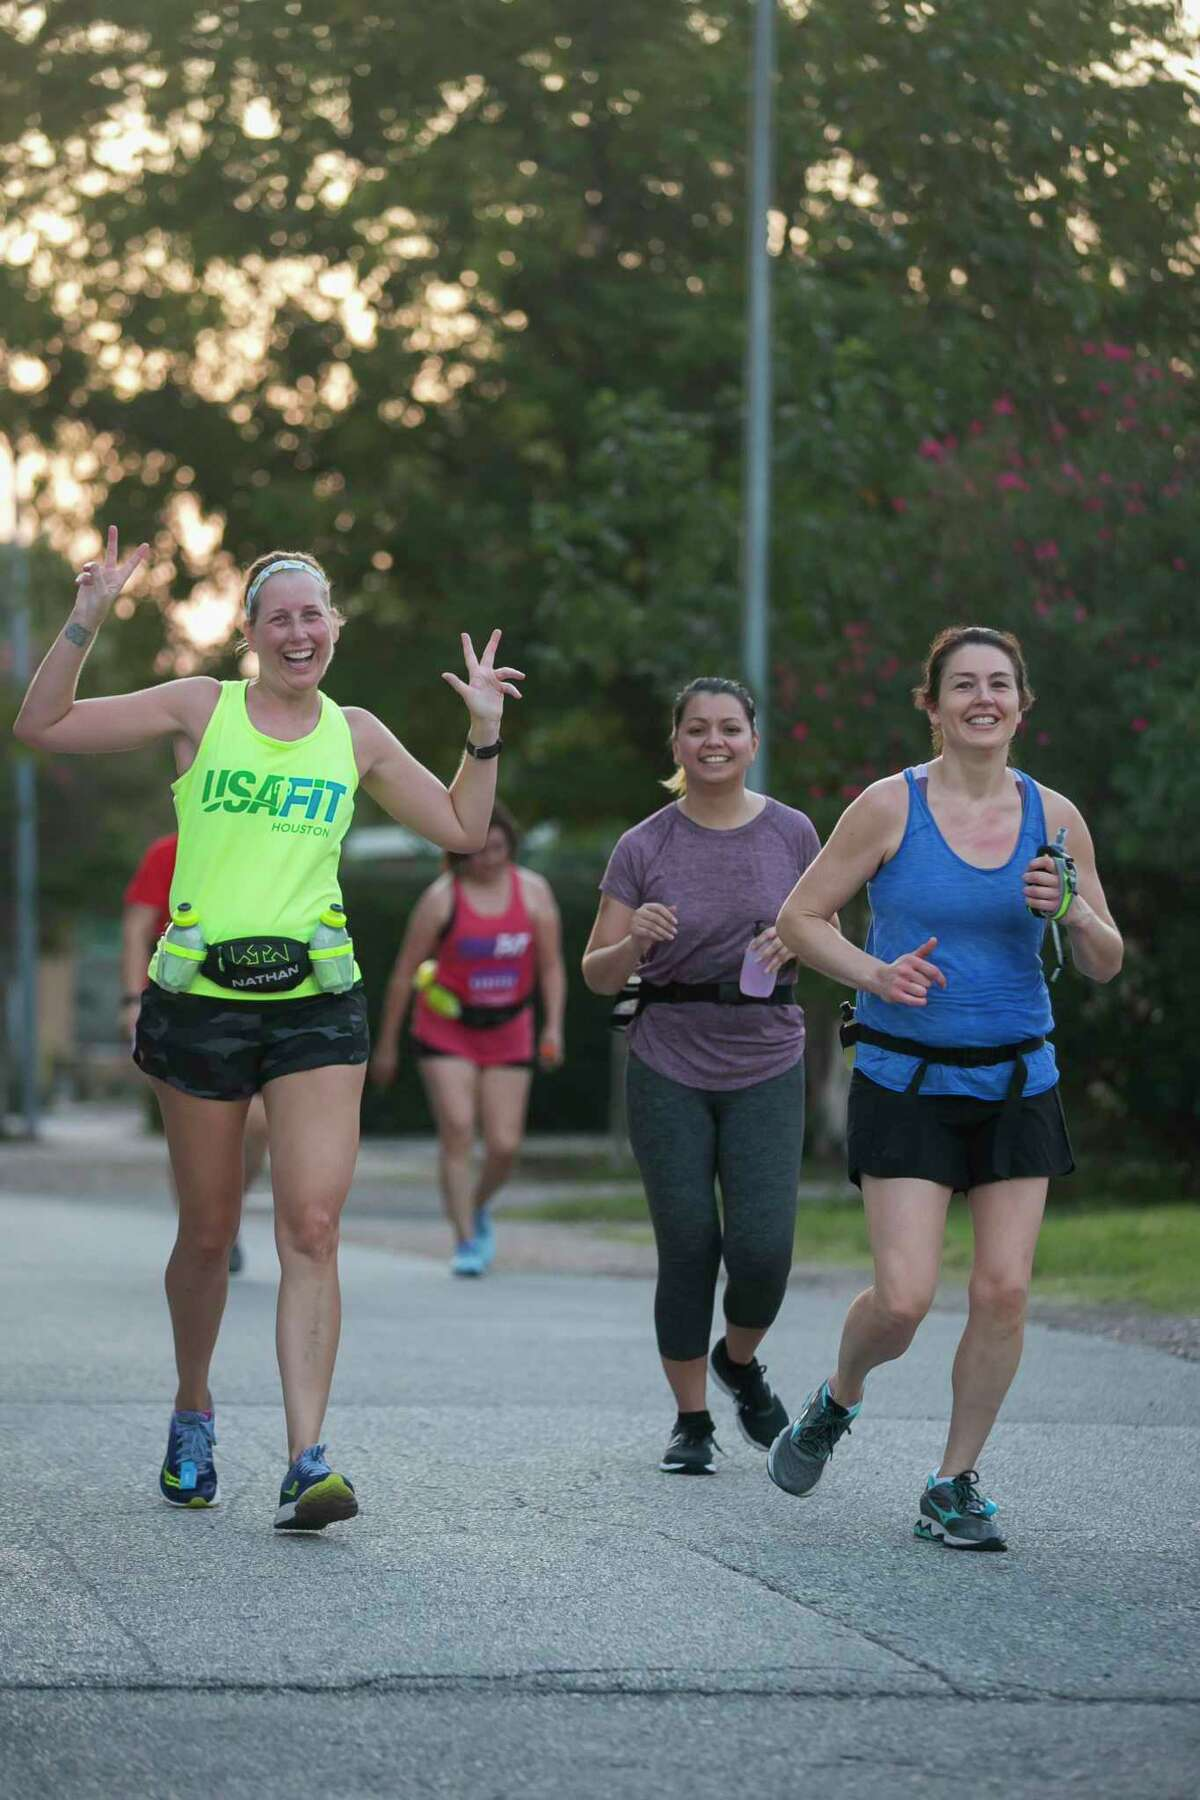 A group of runners during a morning jog on Saturday, Sept. 14, 2019, in Houston.